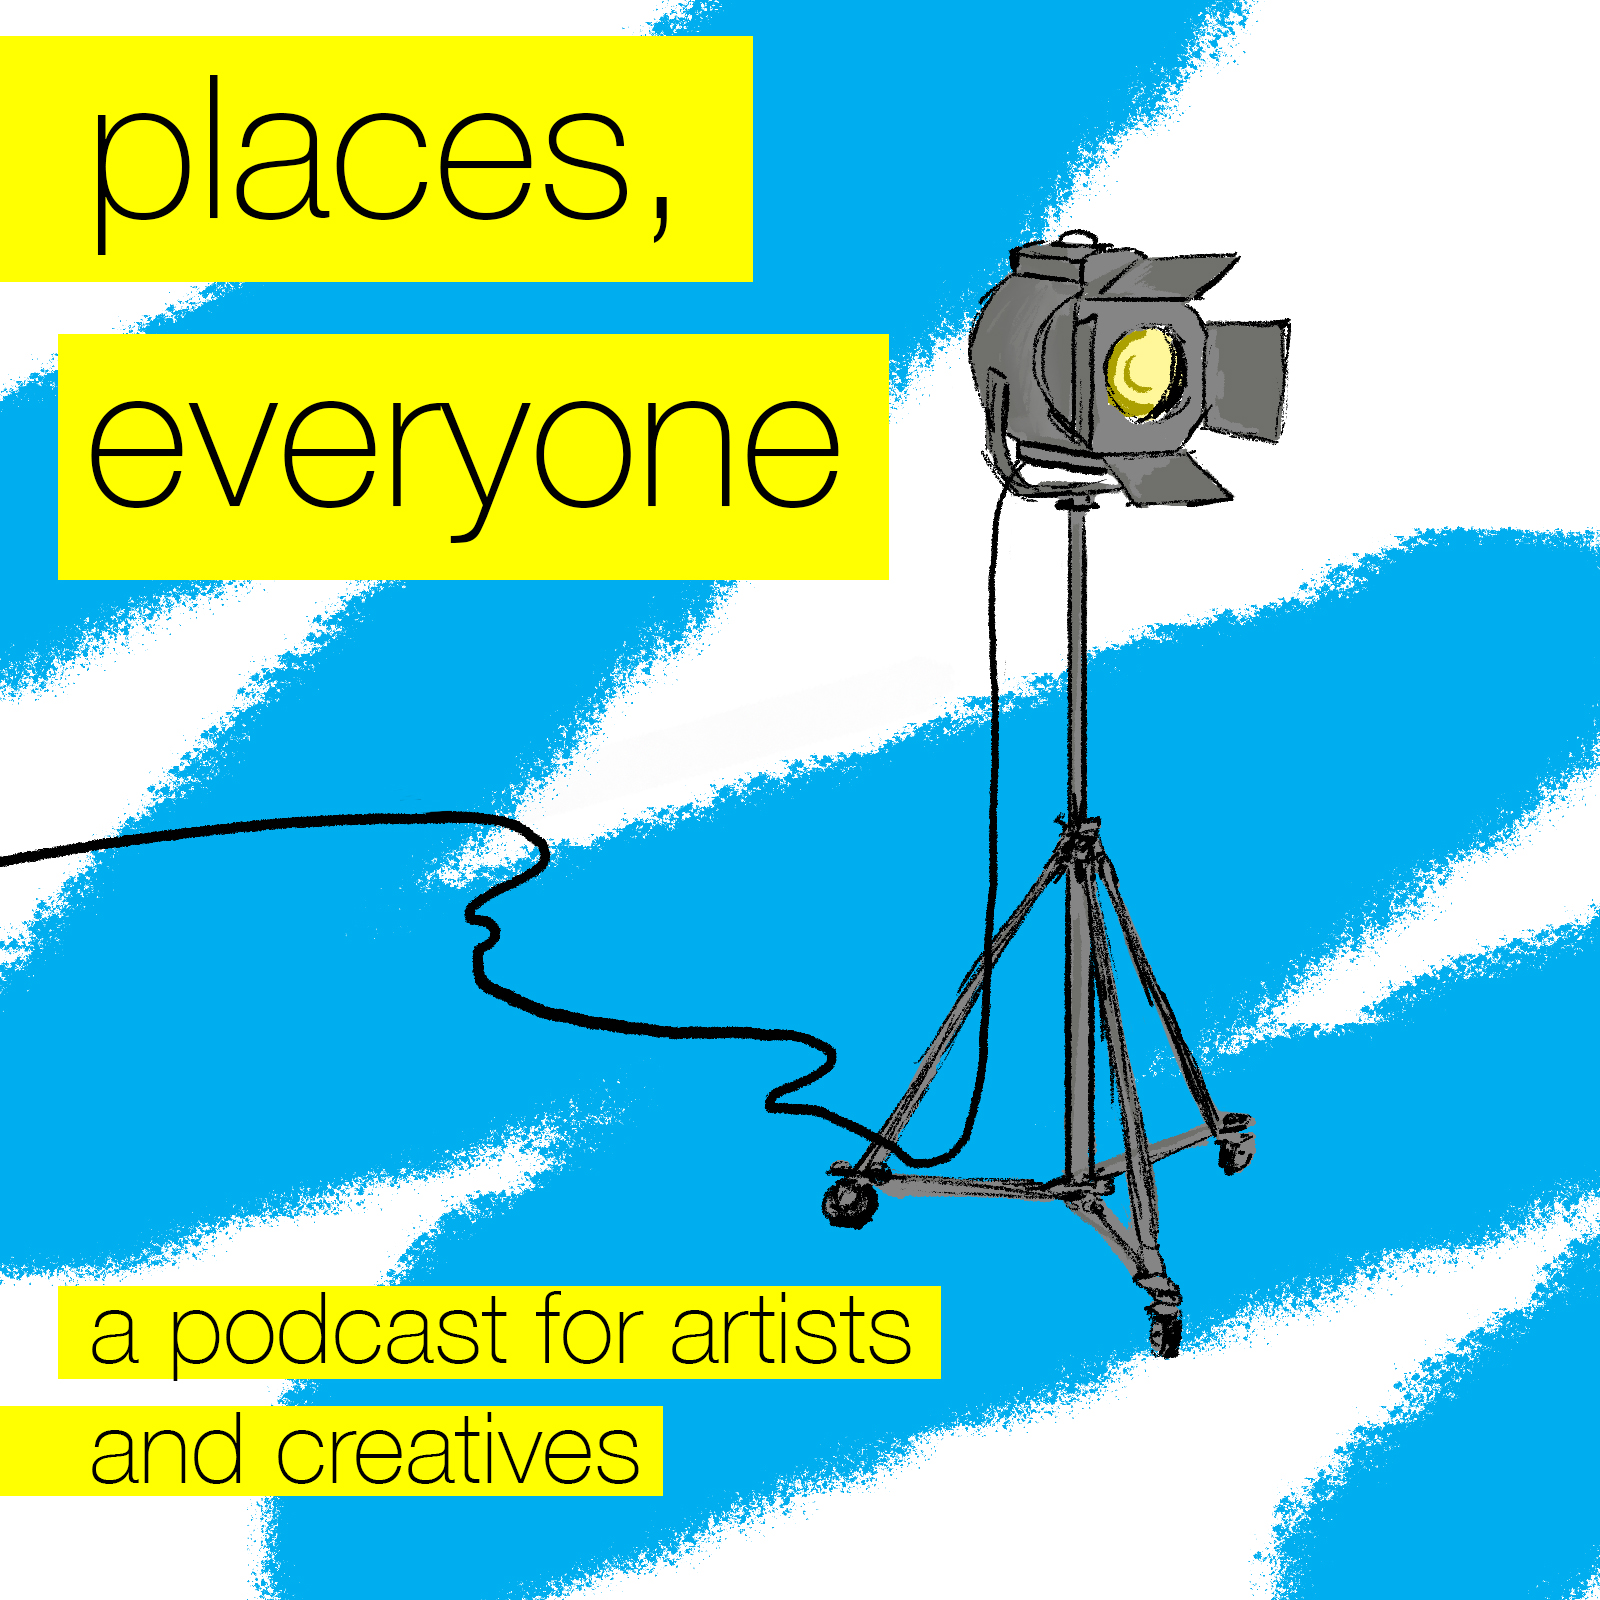 - Welcome to Places, Everyone: a podcast about the intersection of art and business.Through interviews with creative people across stage and screen, this podcast explores how artists work the business side.